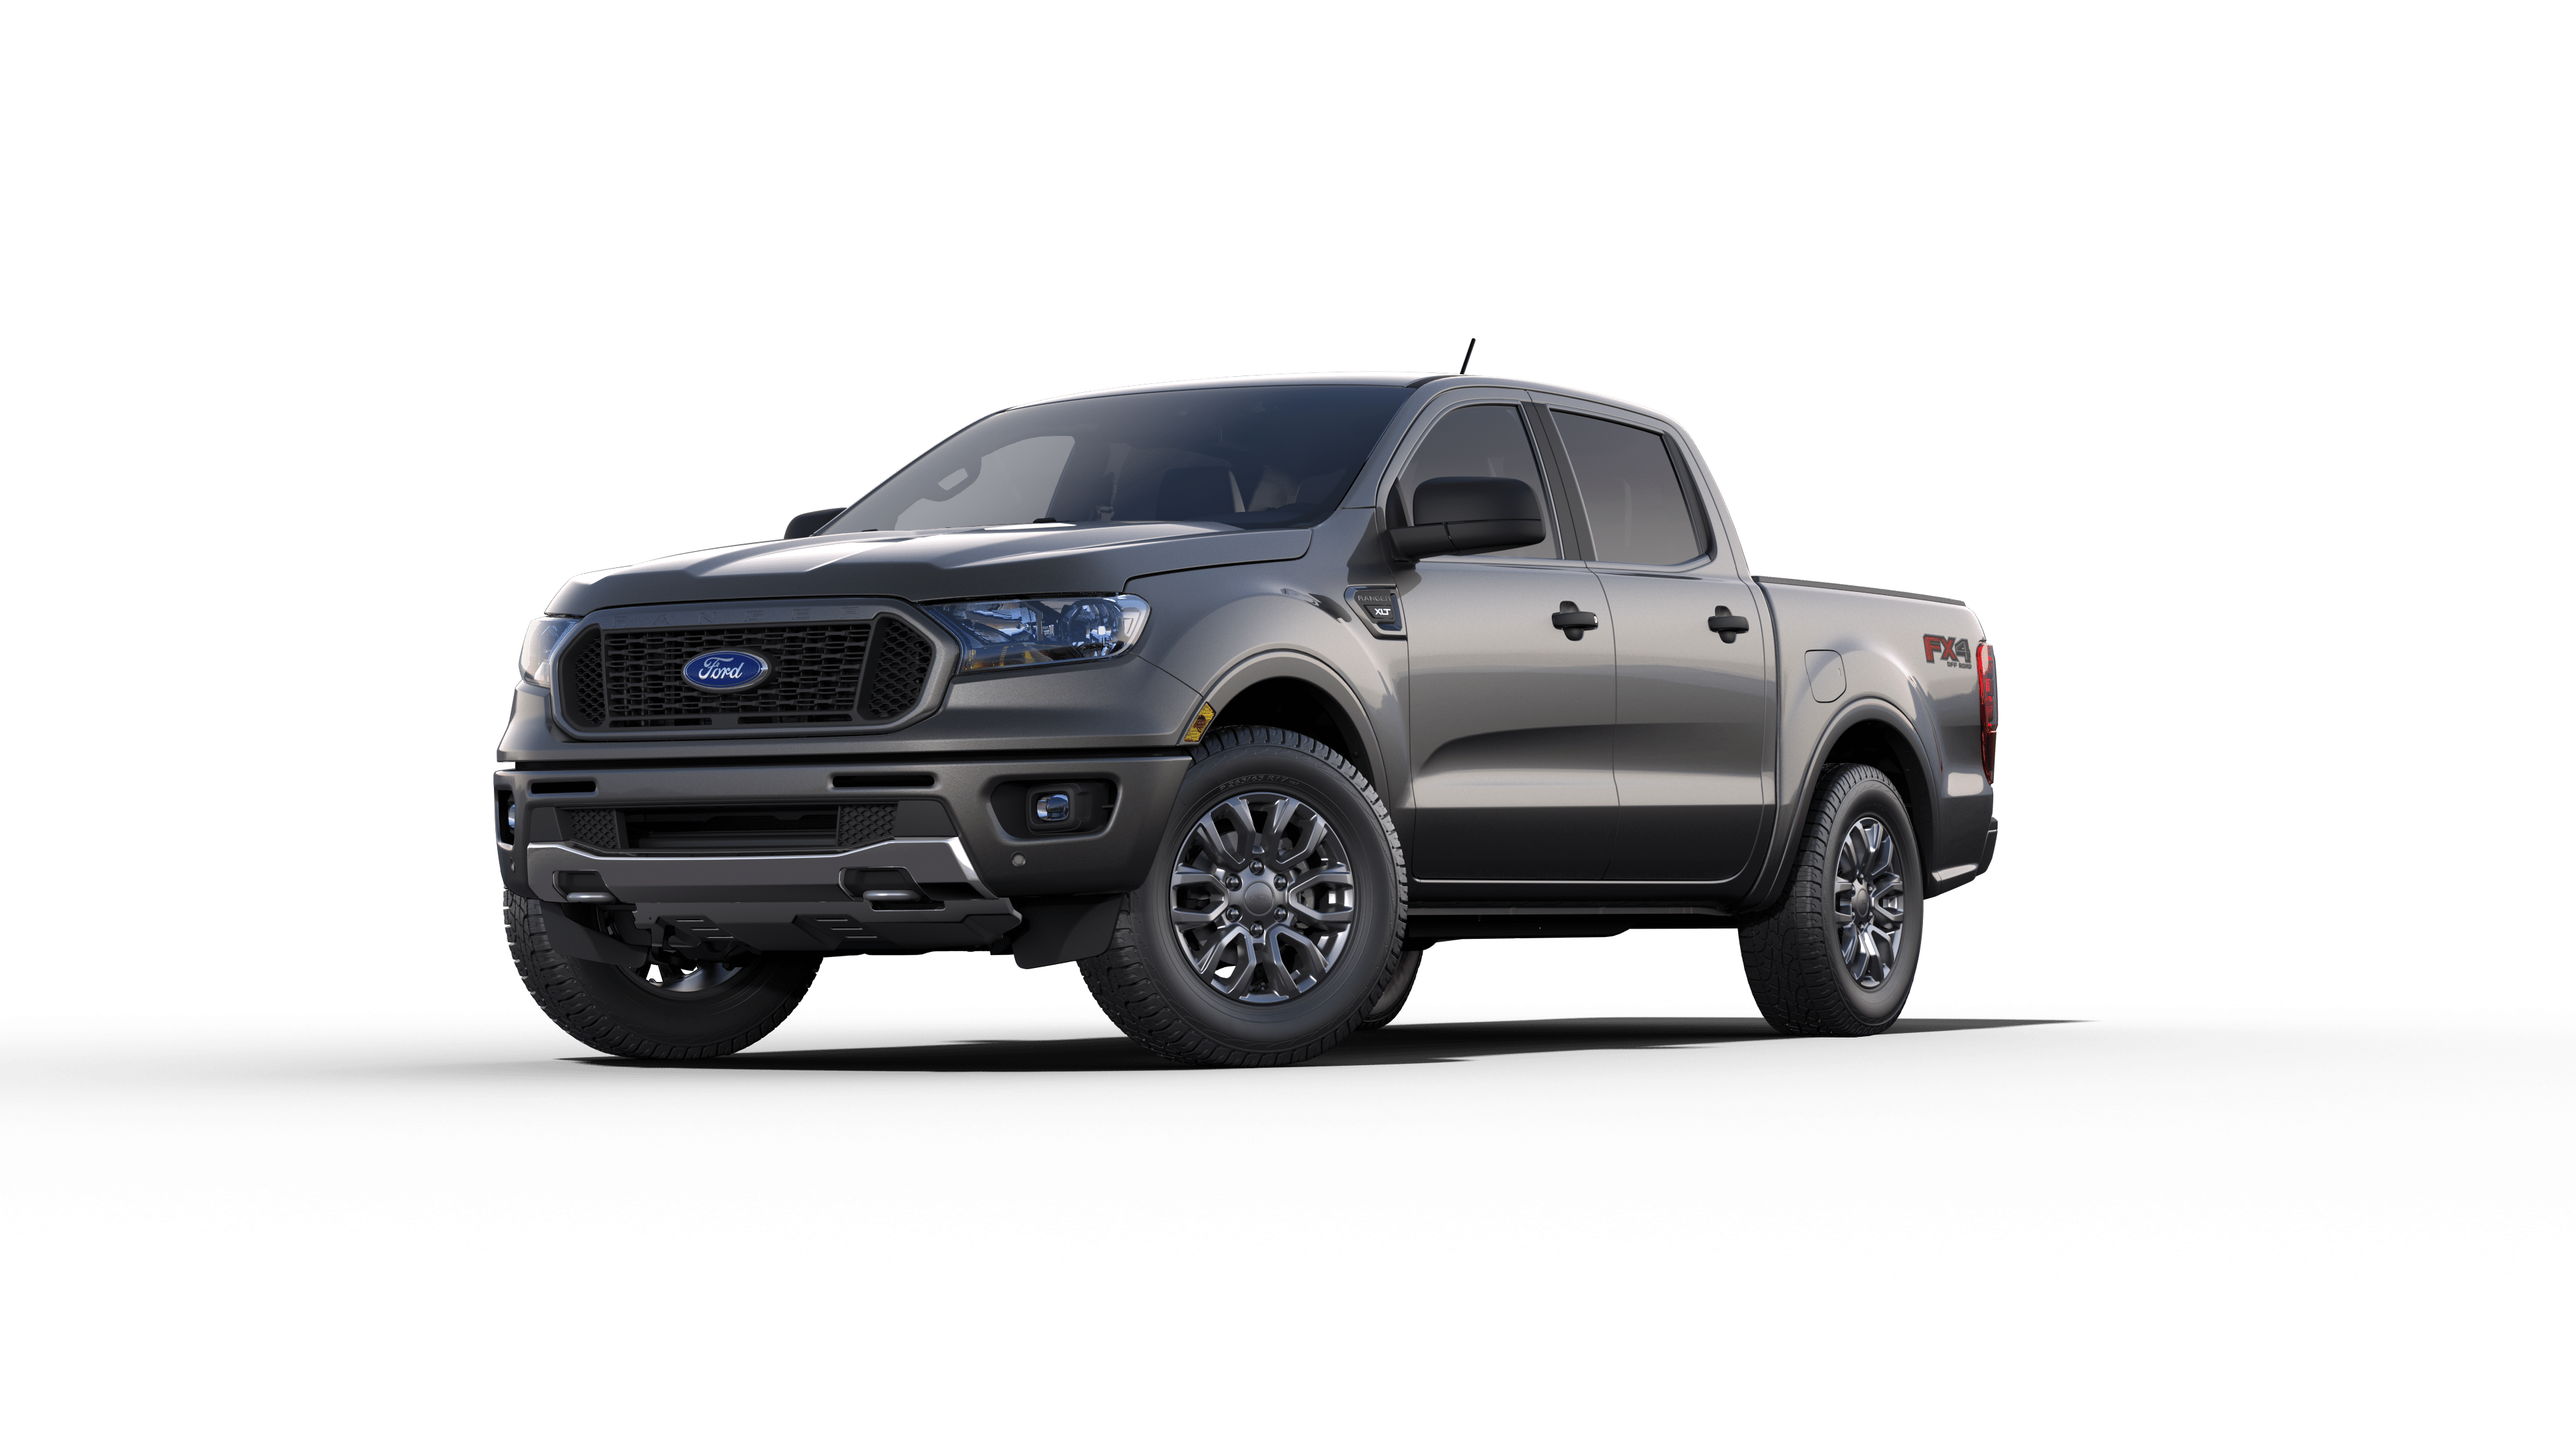 2019 Ford Ranger Vehicle Photo in Quakertown, PA 18951-1403